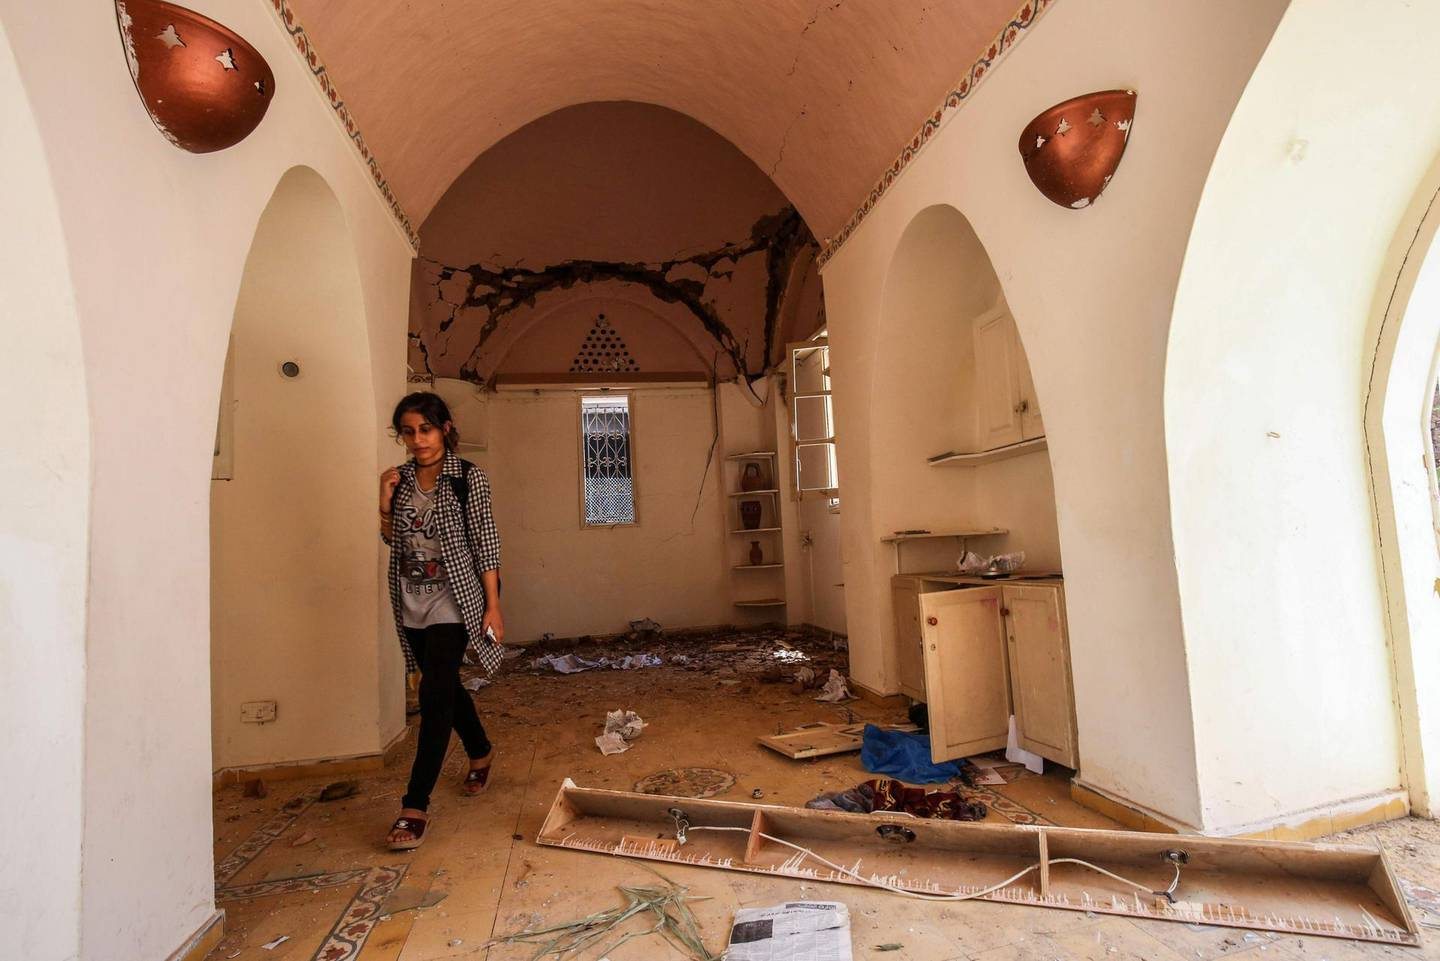 A Palestinian woman inspects damages in the showroom of Gaza the Arts and Crafts Village, adjacent to a building that was hit by Israeli air strikes two days earlier in Gaza City, on July 16, 2018. / AFP / SAID KHATIB